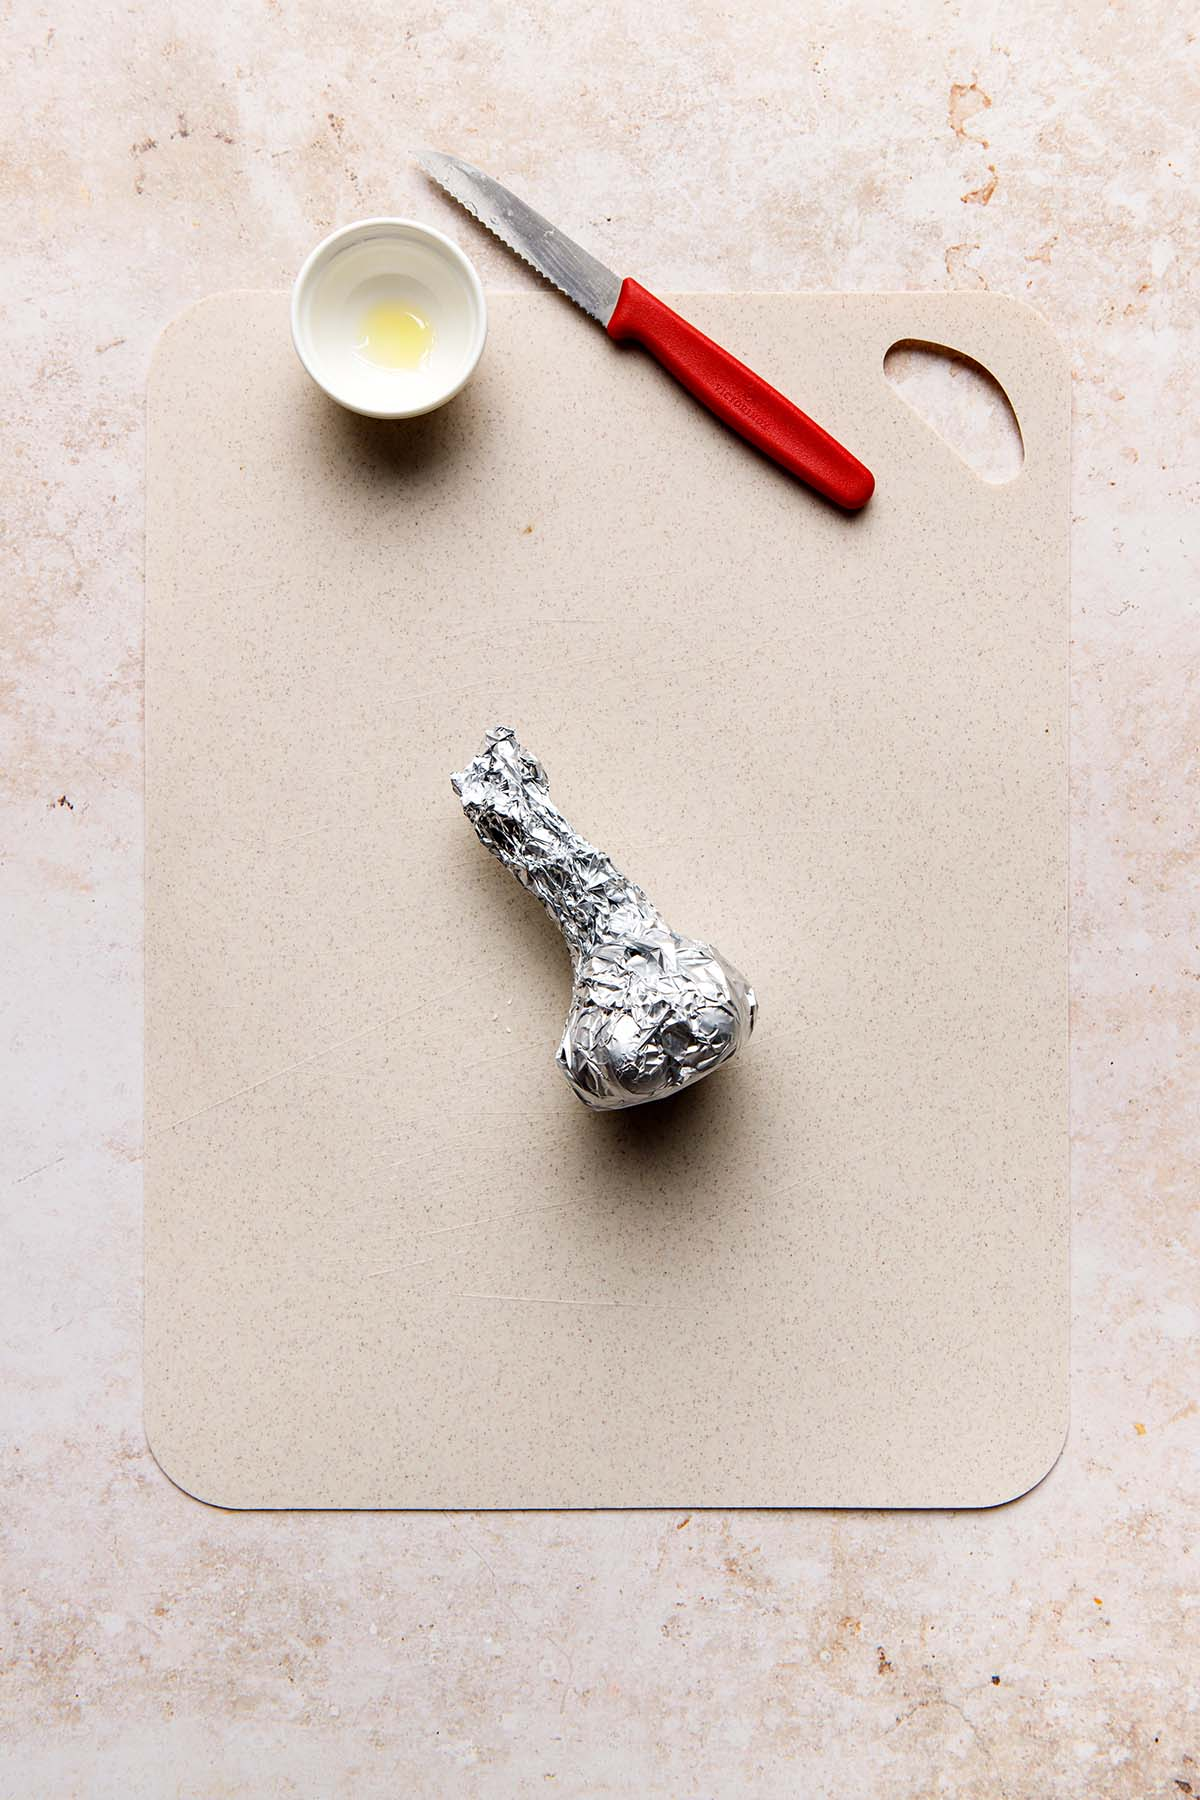 A bulb of garlic wrapped in foil laying on a beige cutting board with a small white bowl and red-handled knife nearby.